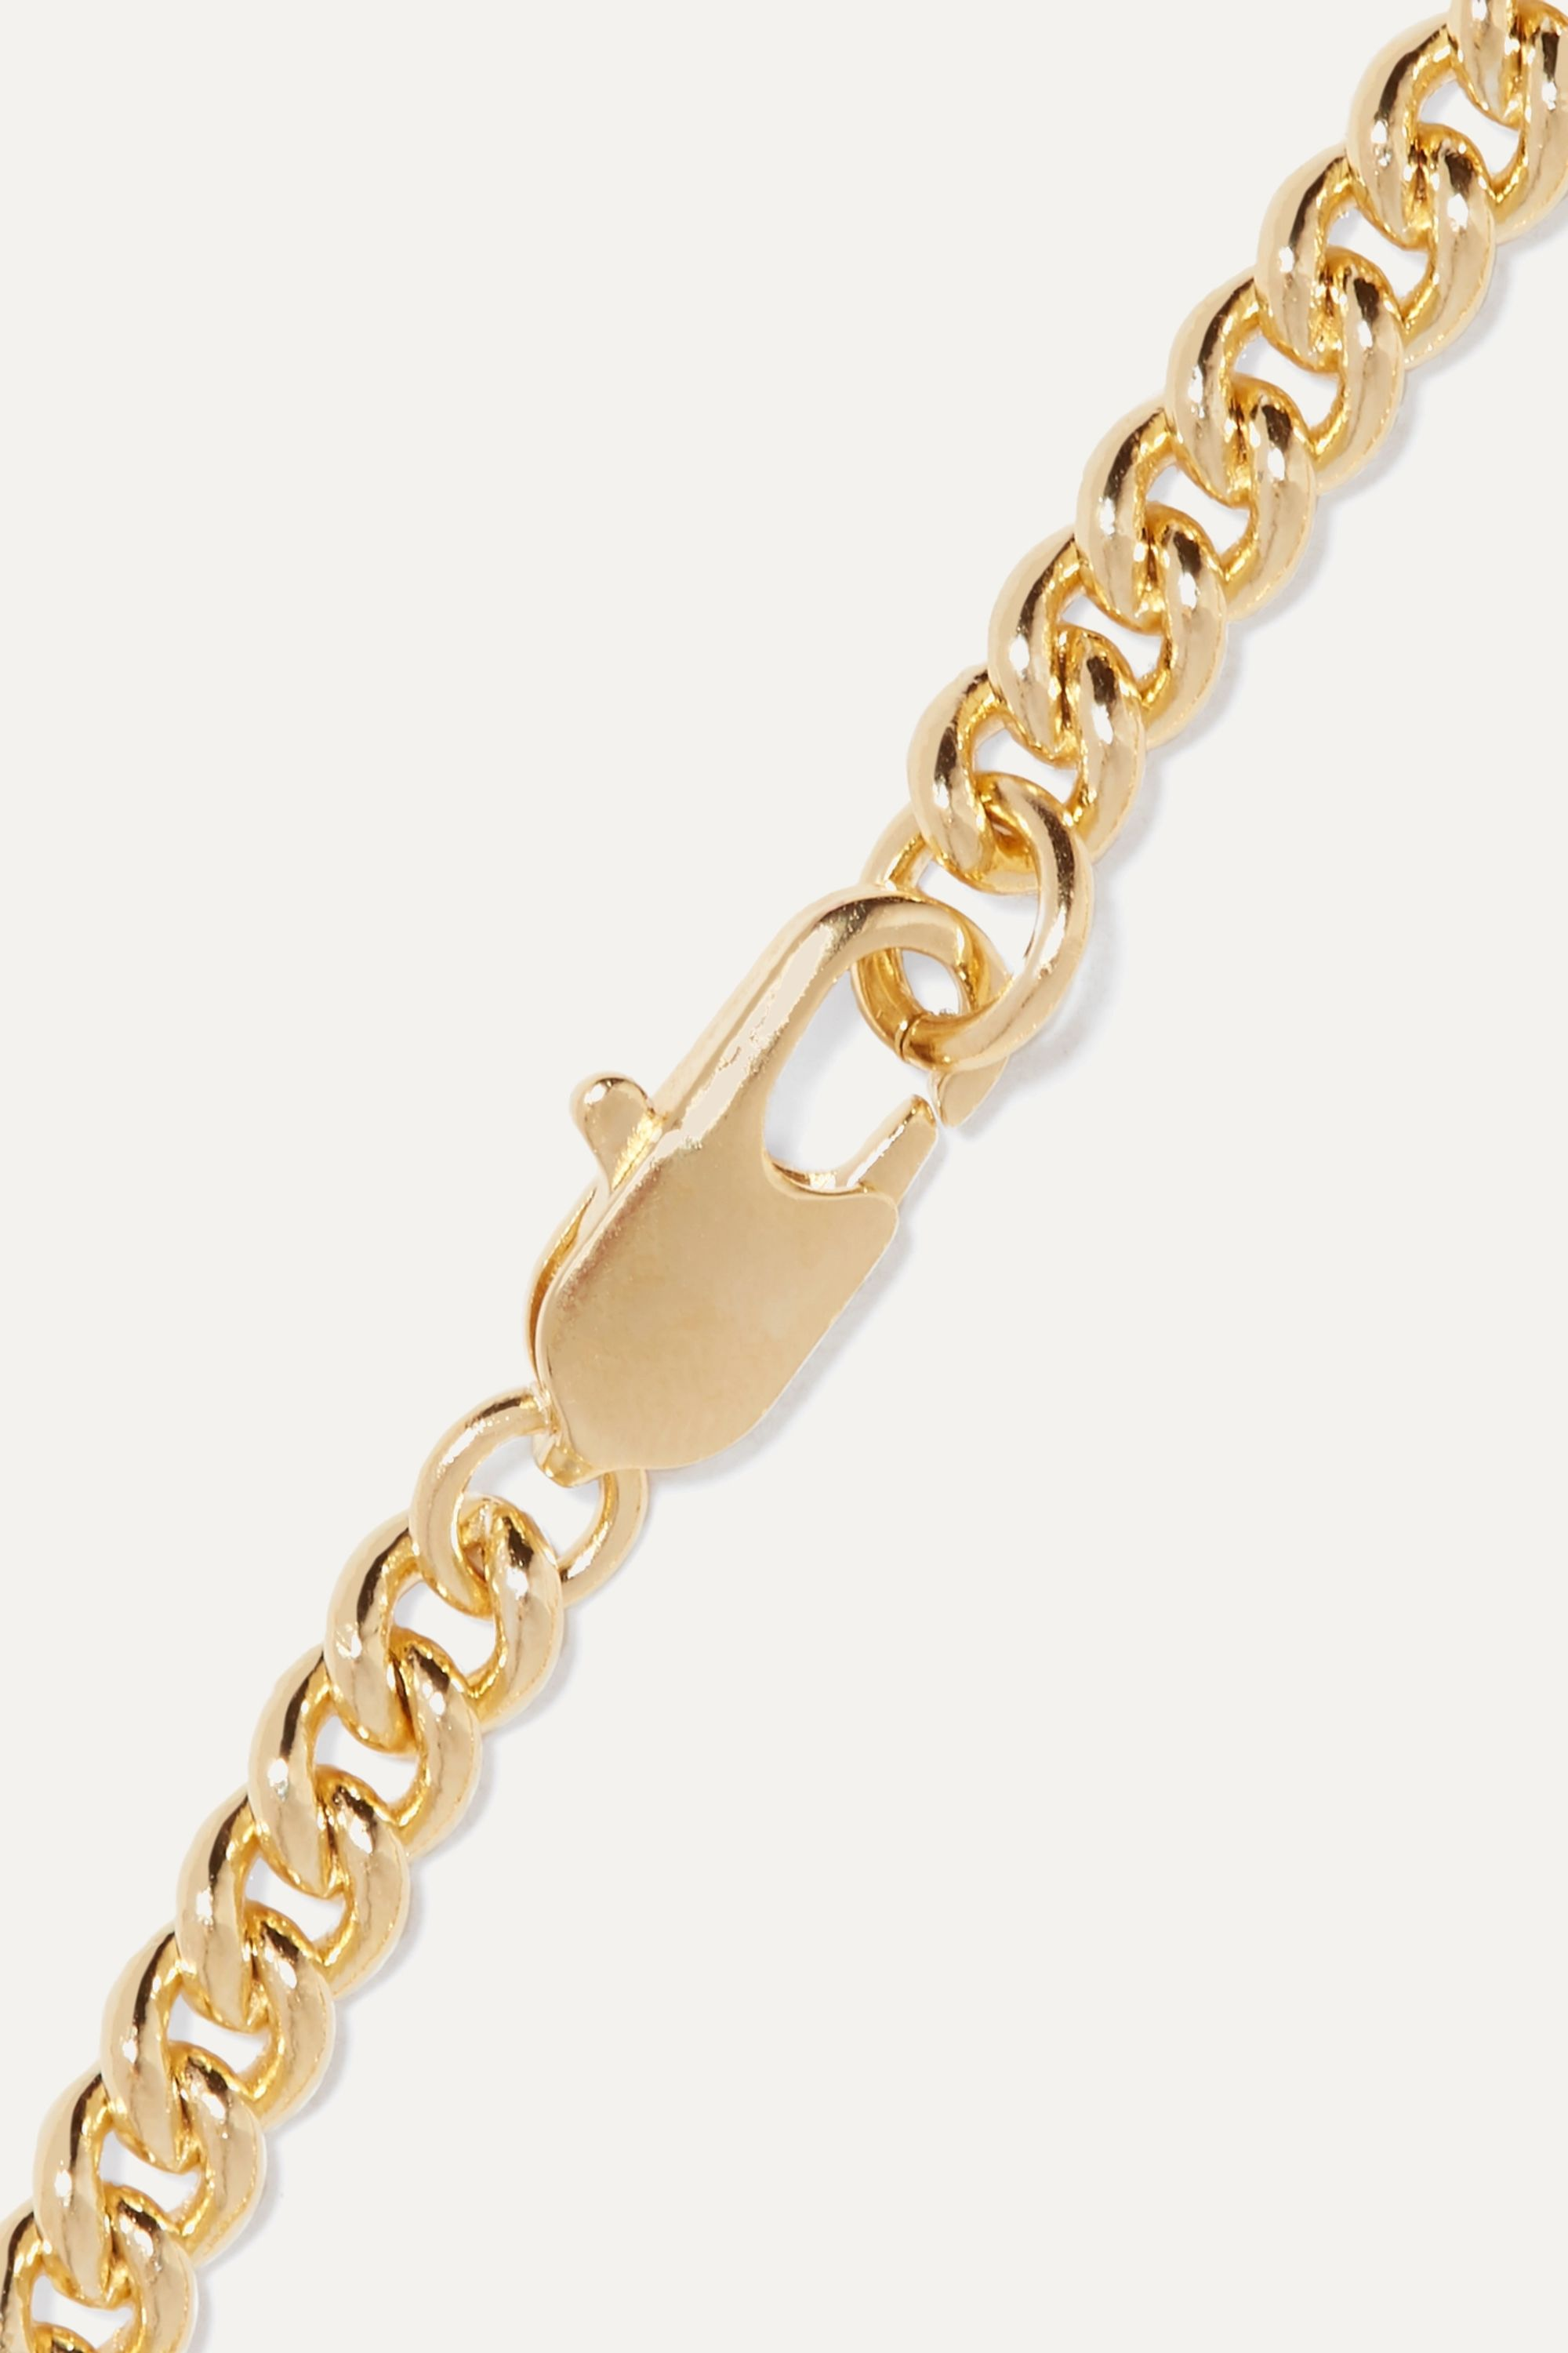 Laura Lombardi Curb gold-plated bracelet